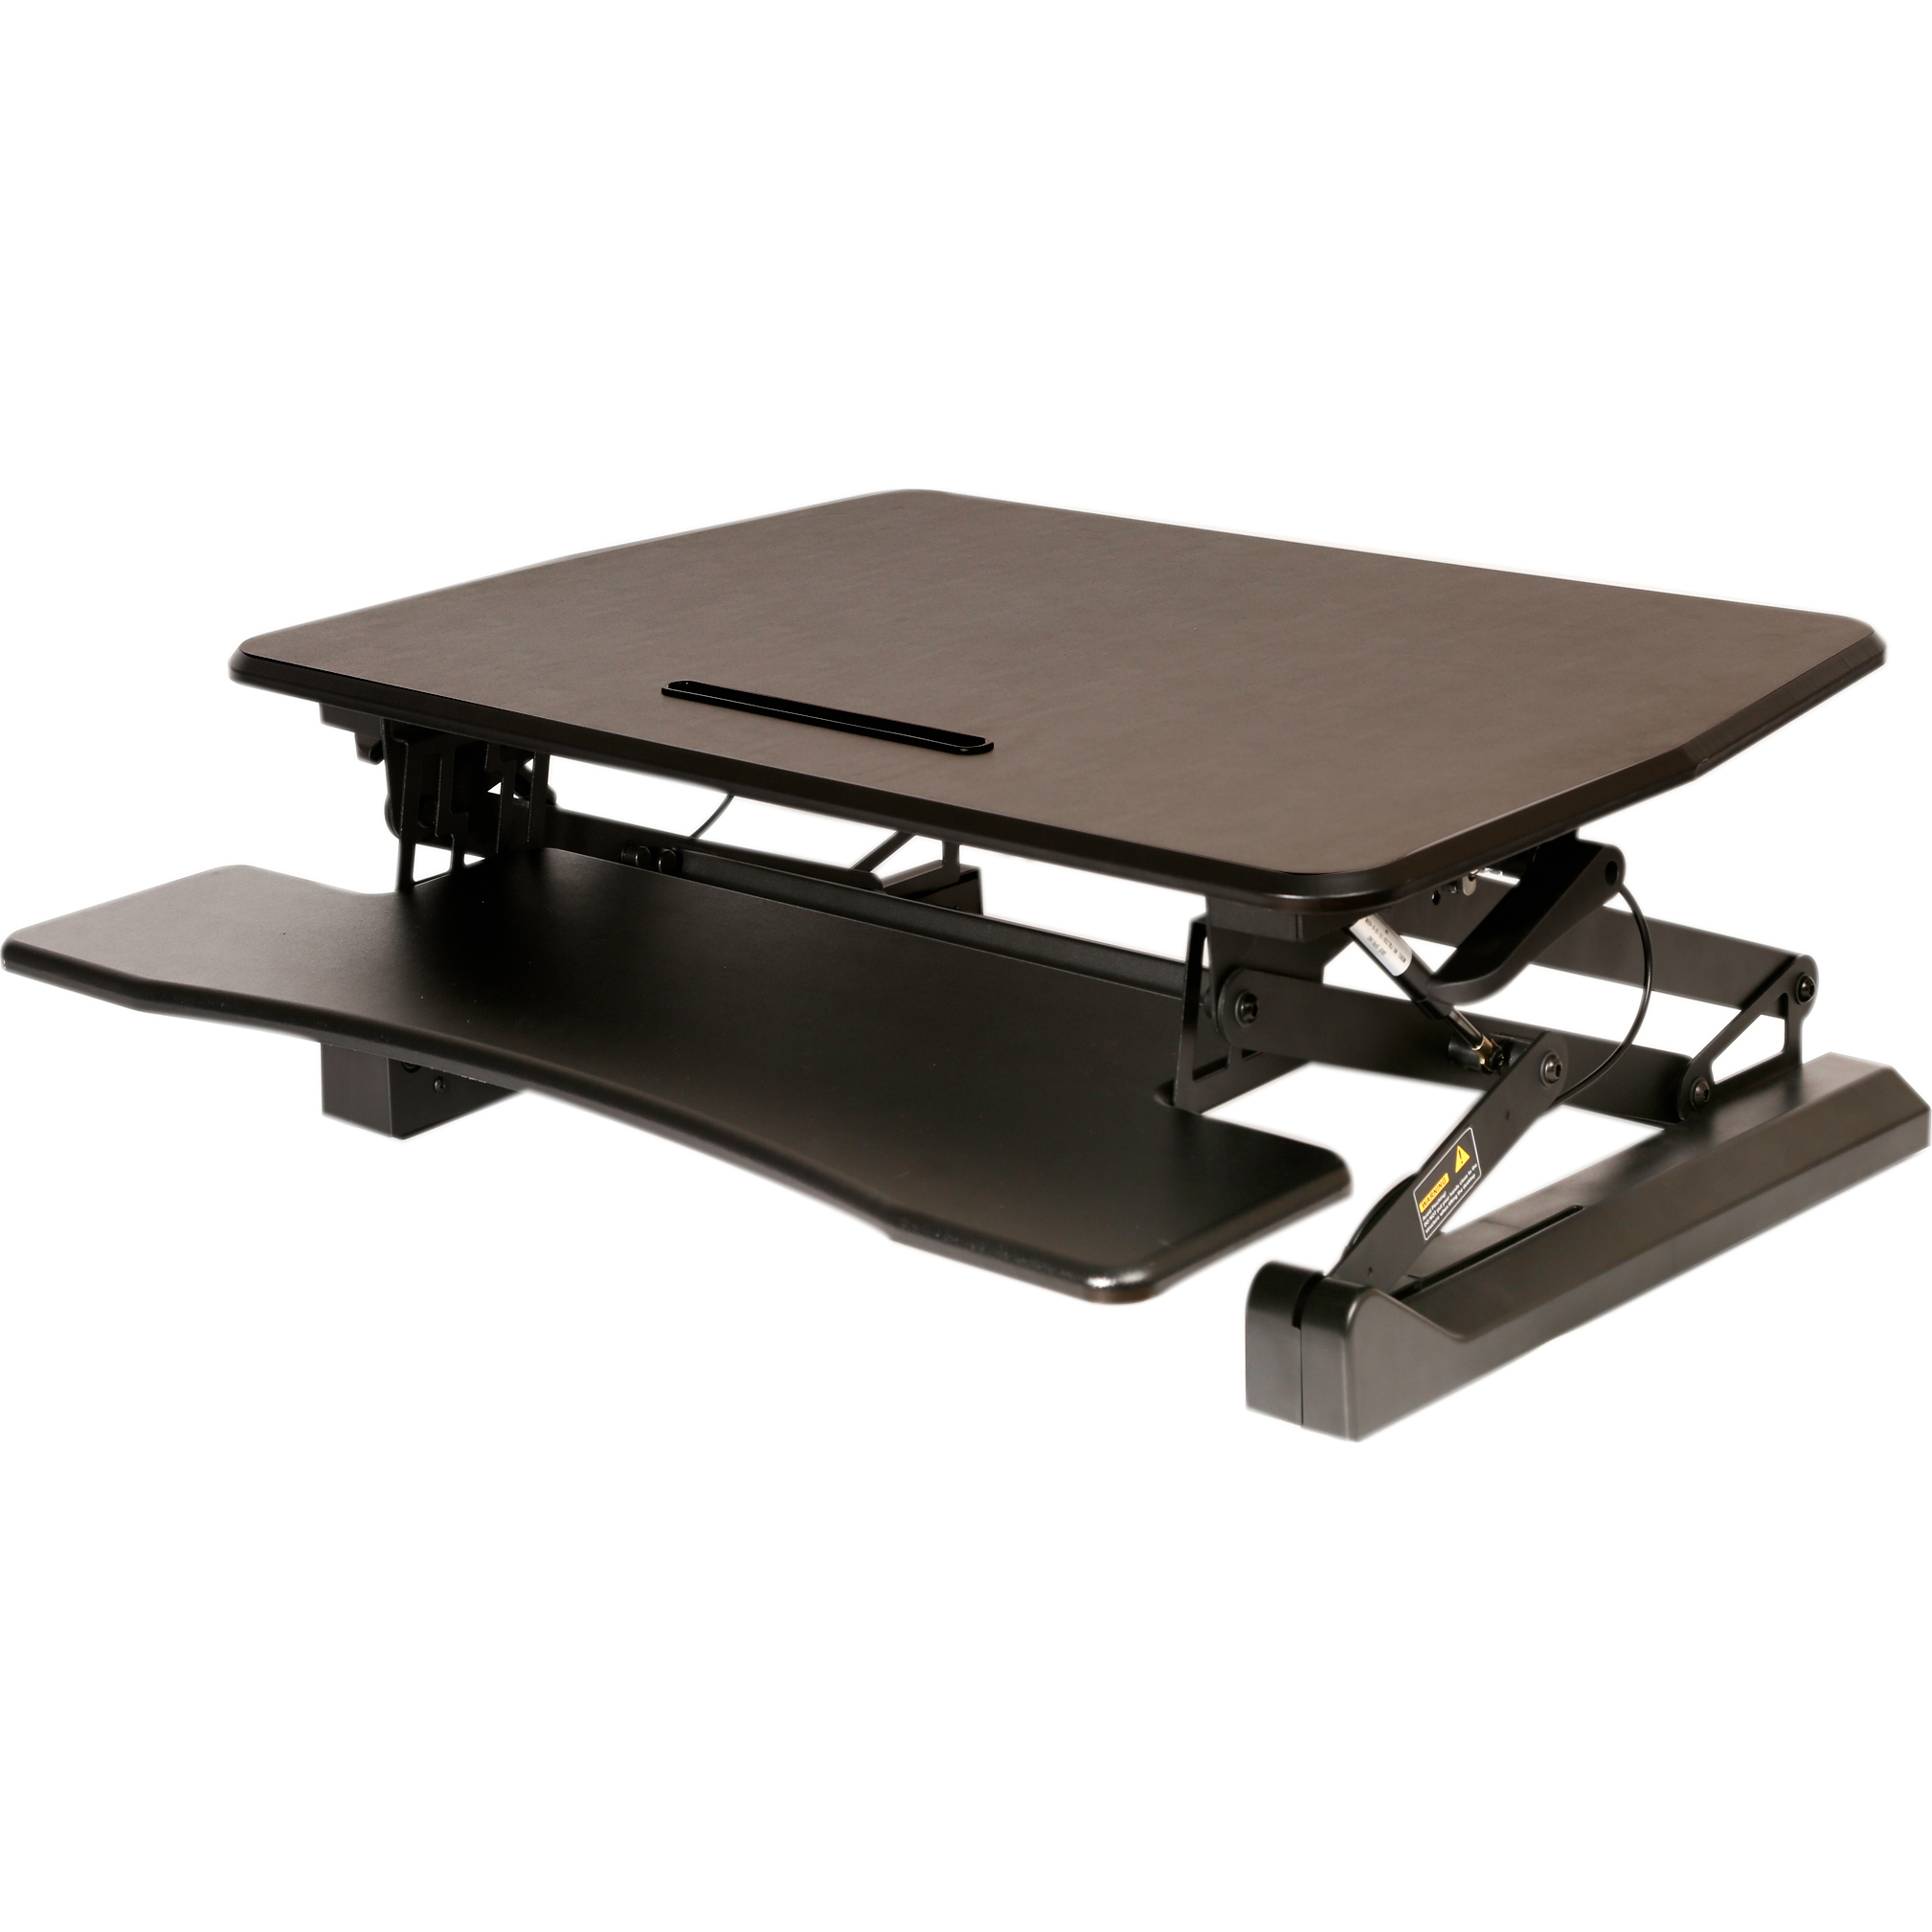 "Seville Classics AIRLIFT Pneumatic Sit-to-Stand Adjustable Desktop Converter, (35.4"" Wide, Keyboard Tray)"